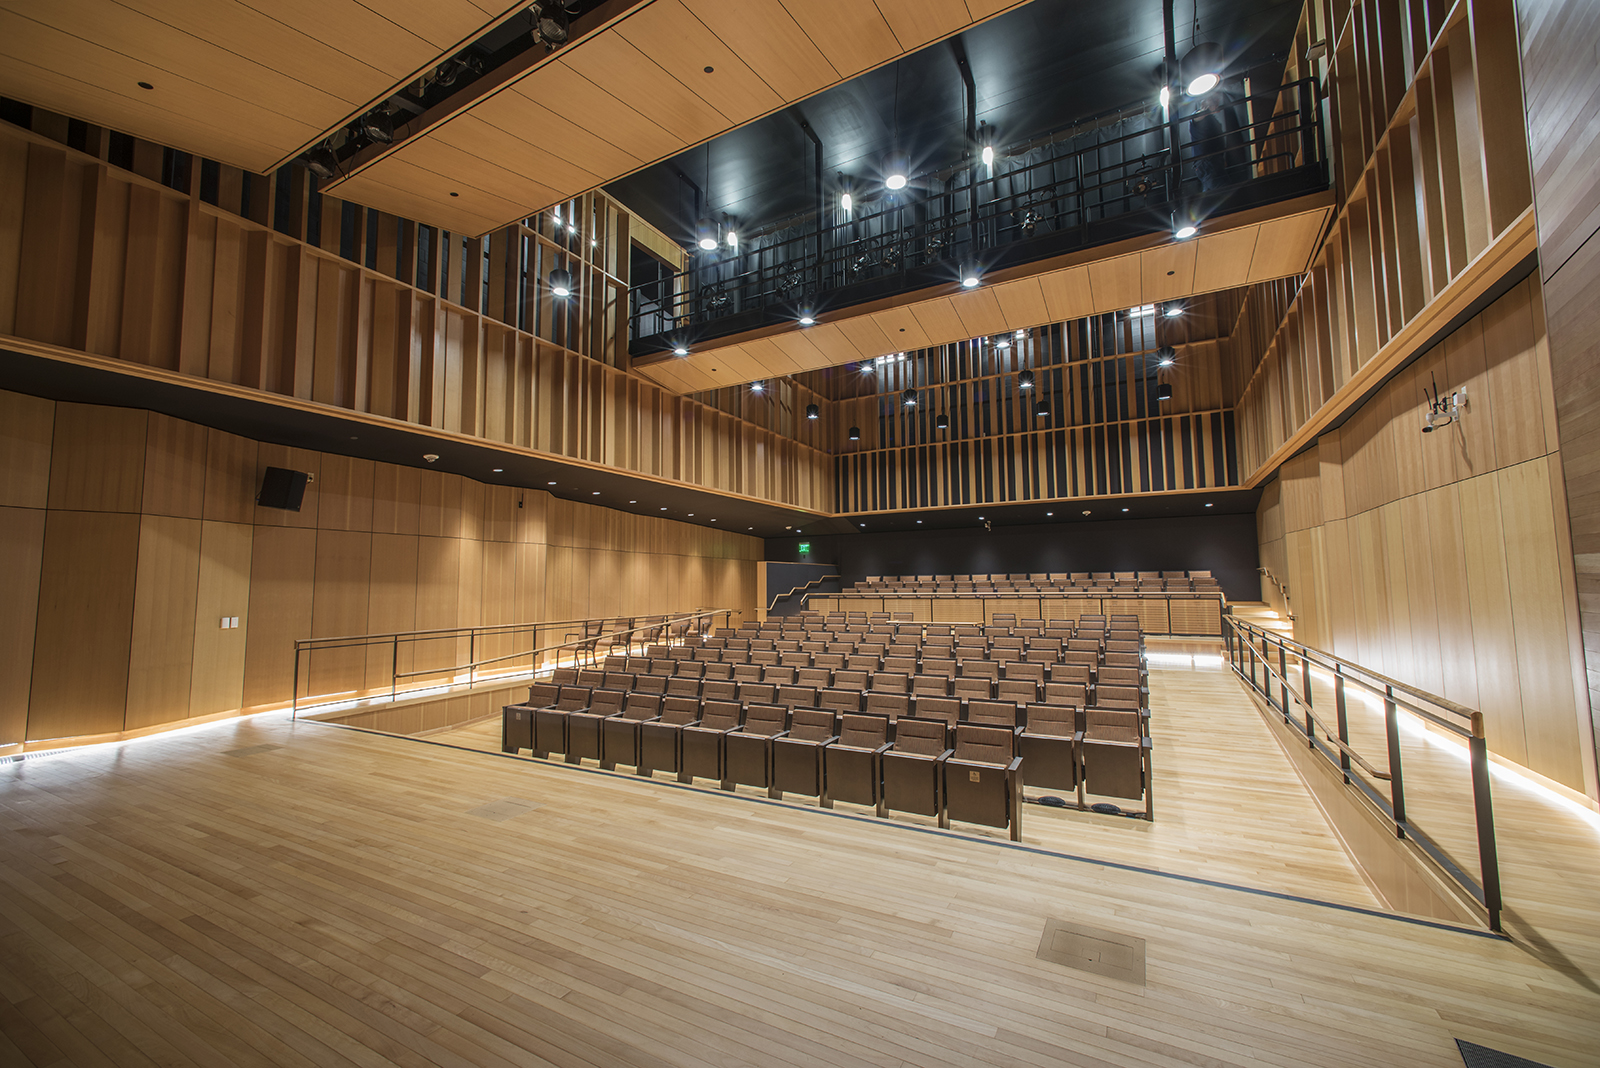 The 196-seat Zingg Recital Hall features variable acoustics thanks to its wood paneling, and connects to a state-of-the-art recording studio.